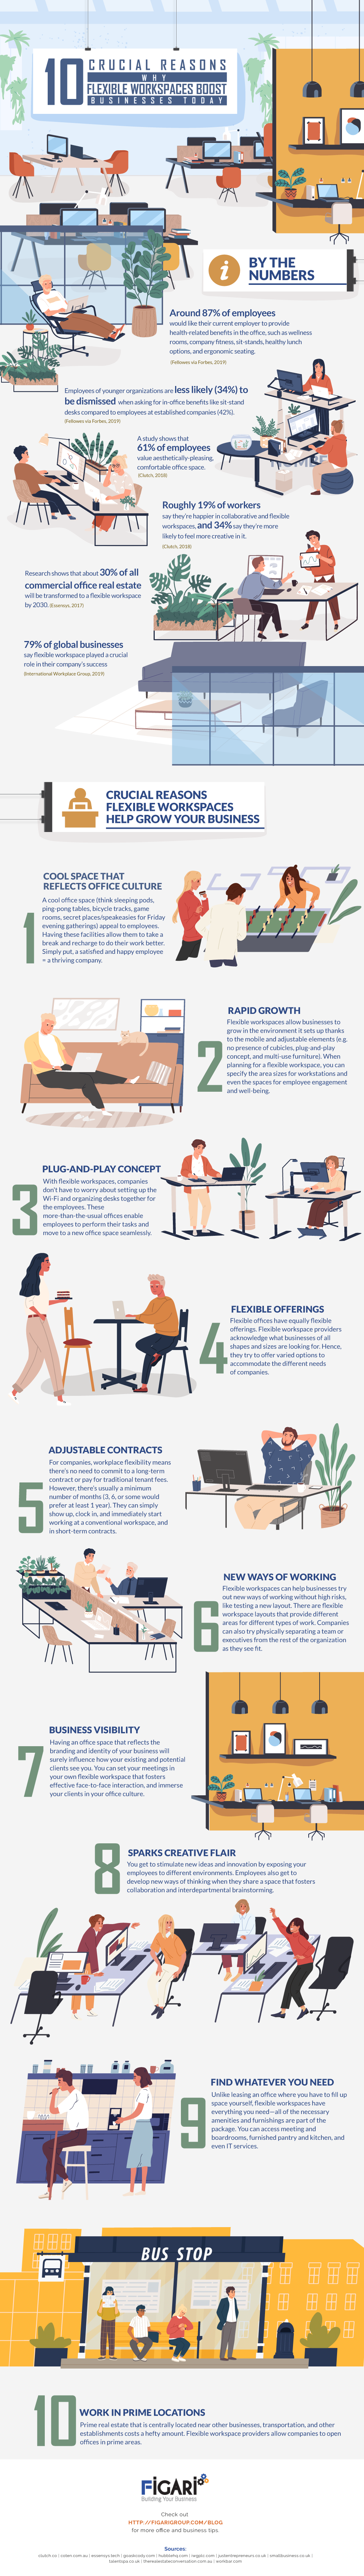 10 Crucial Reasons Why Flexible Workspaces Boost Businesses Today